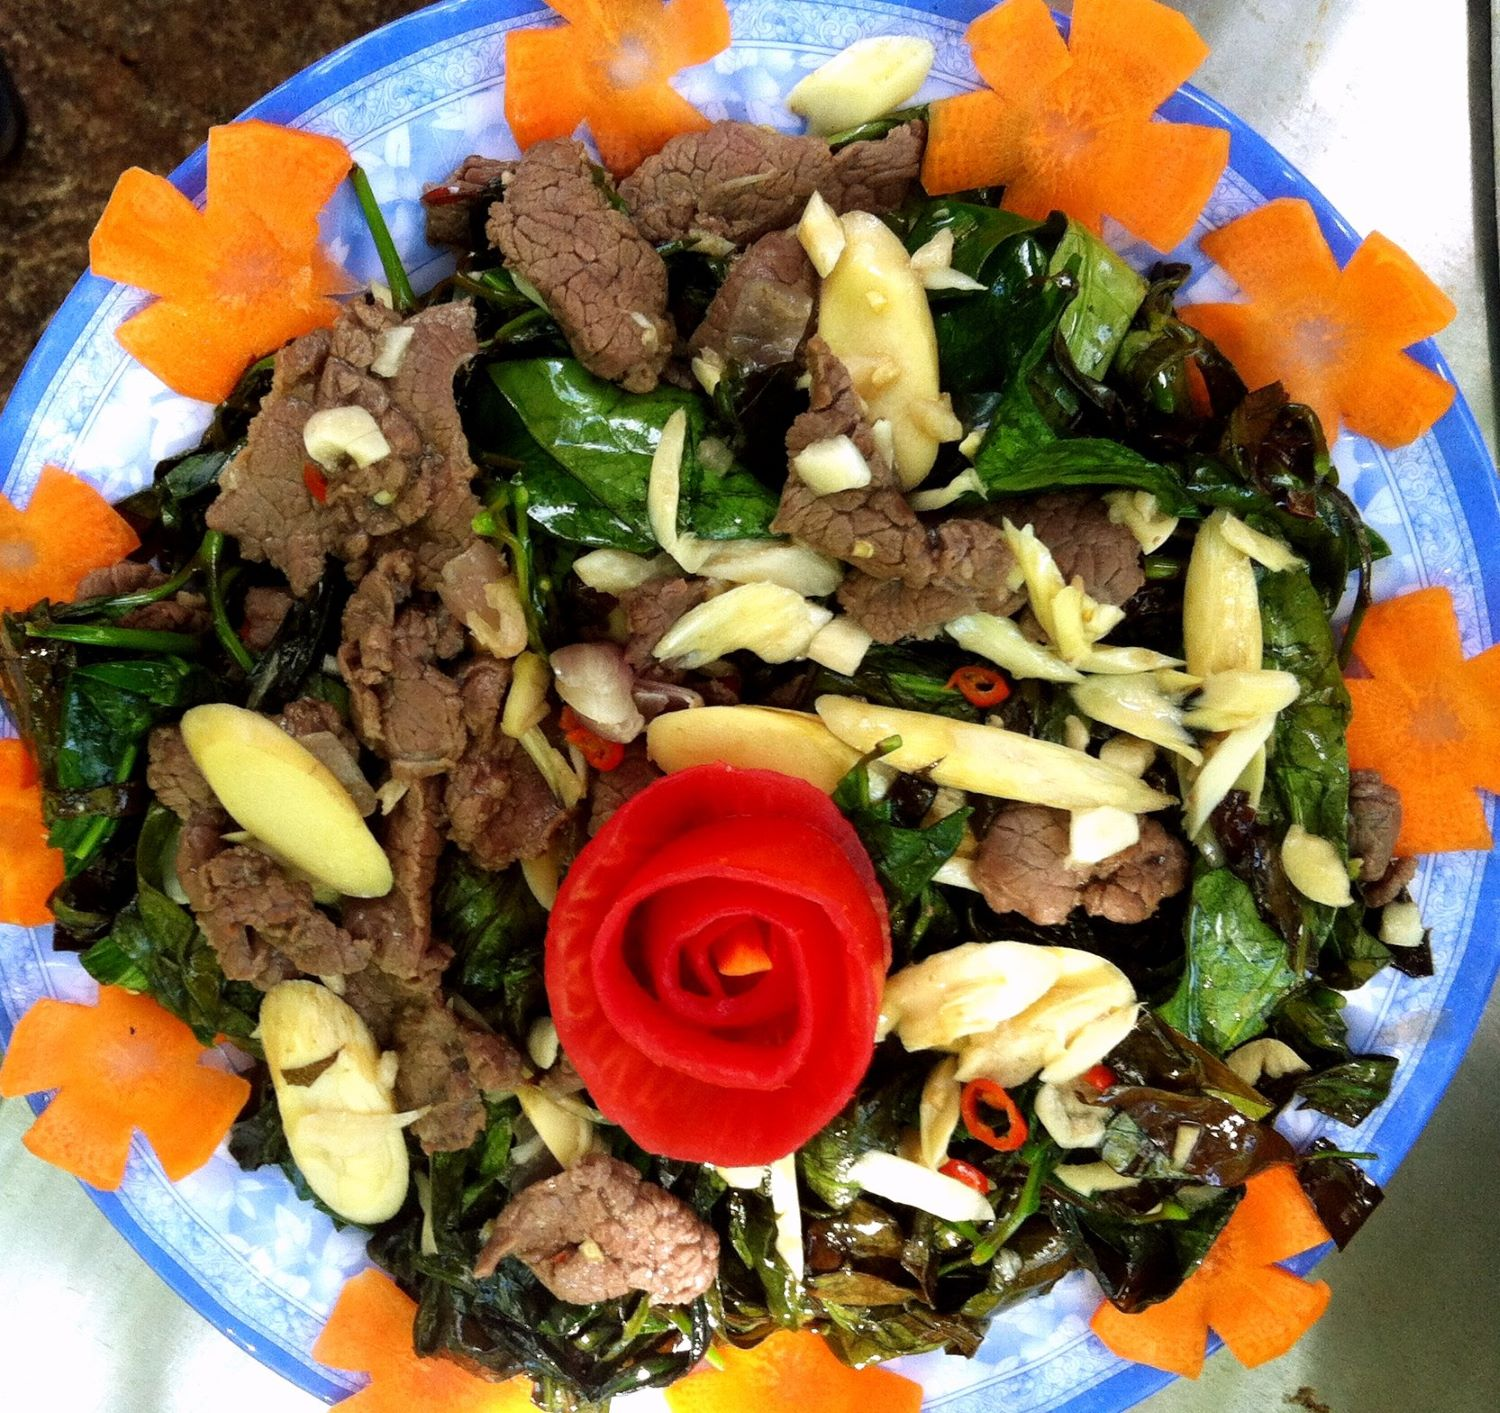 Stir-fried gnetum leaves with beef